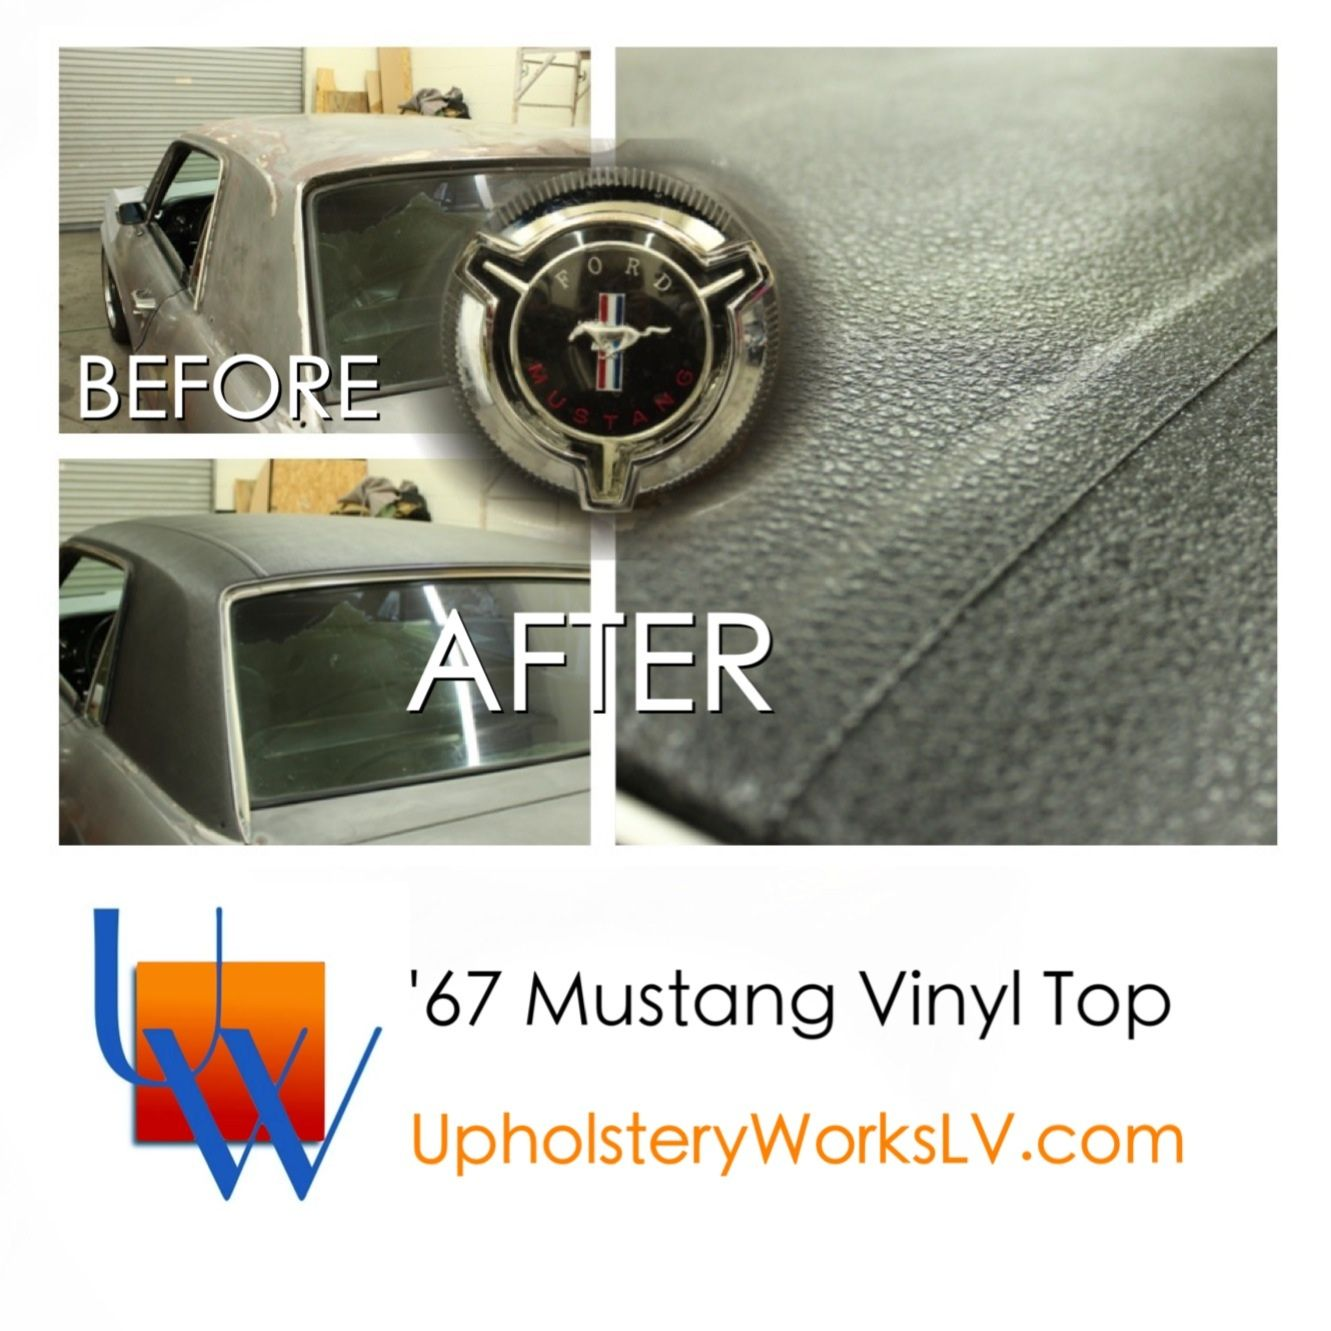 Pin By Upholstery Works On Auto Upholstery